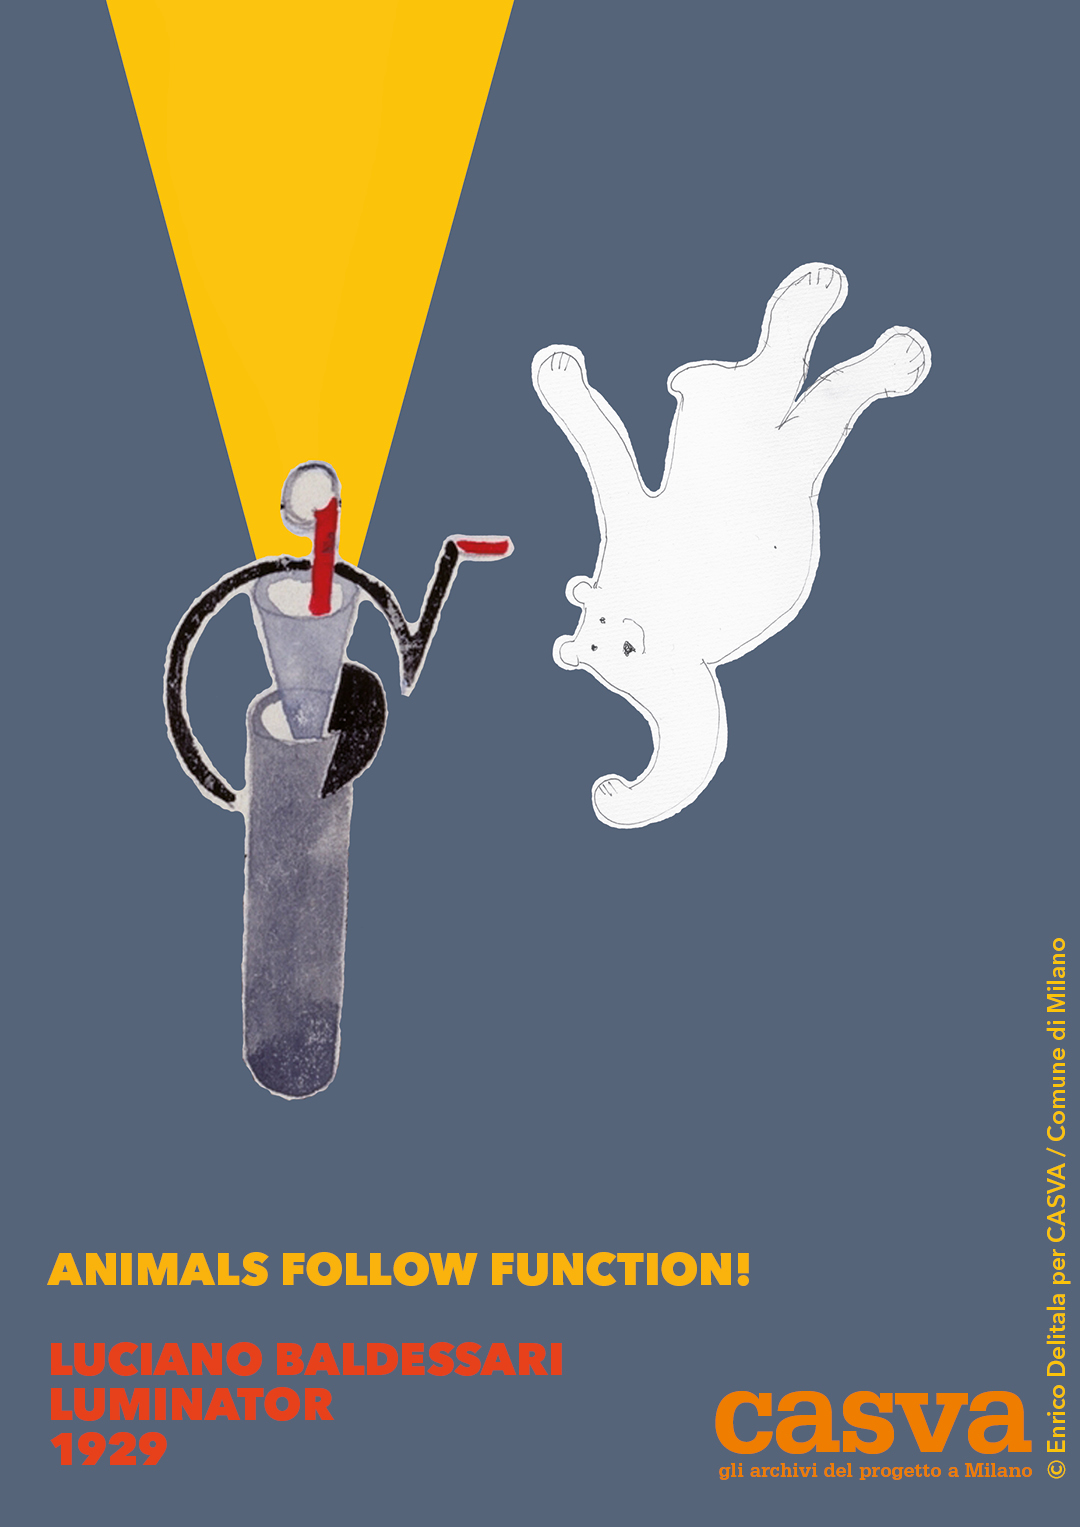 ORSO: Enrico Delitala illustrator animals follow function form follows function CASVA Luciano Baldessari Luminator